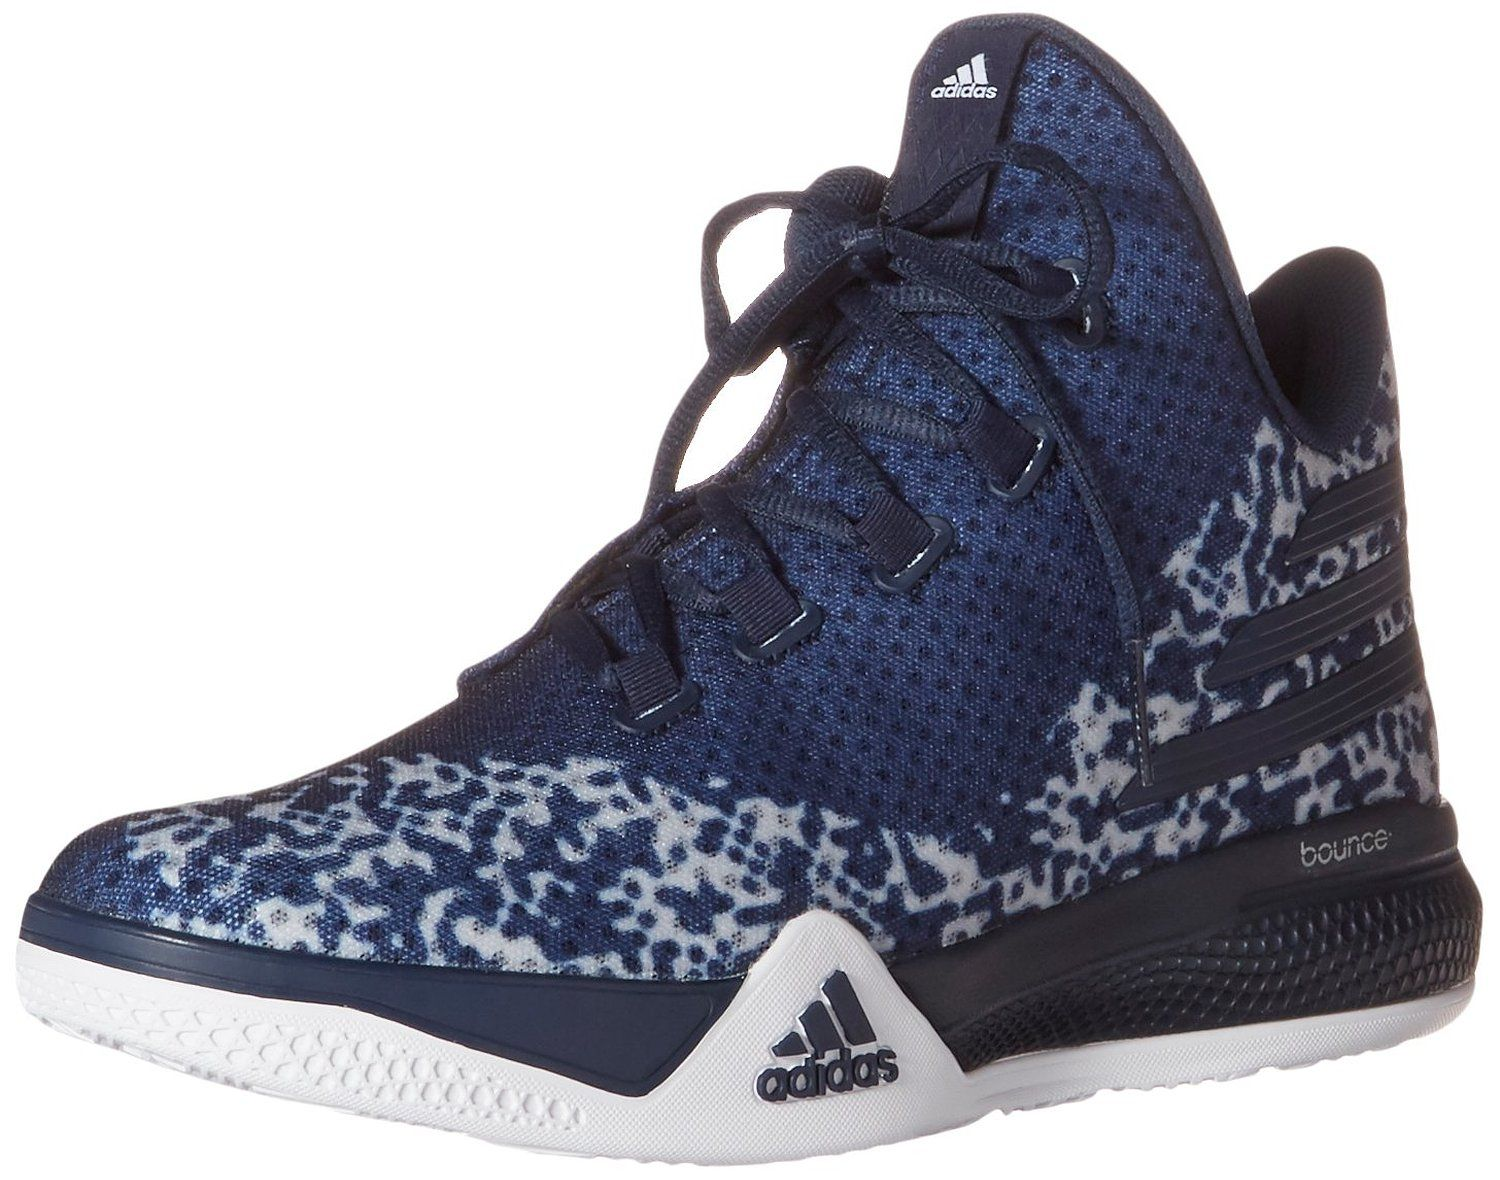 The Best adidas Basketball Shoes: Light 'Em Up 2